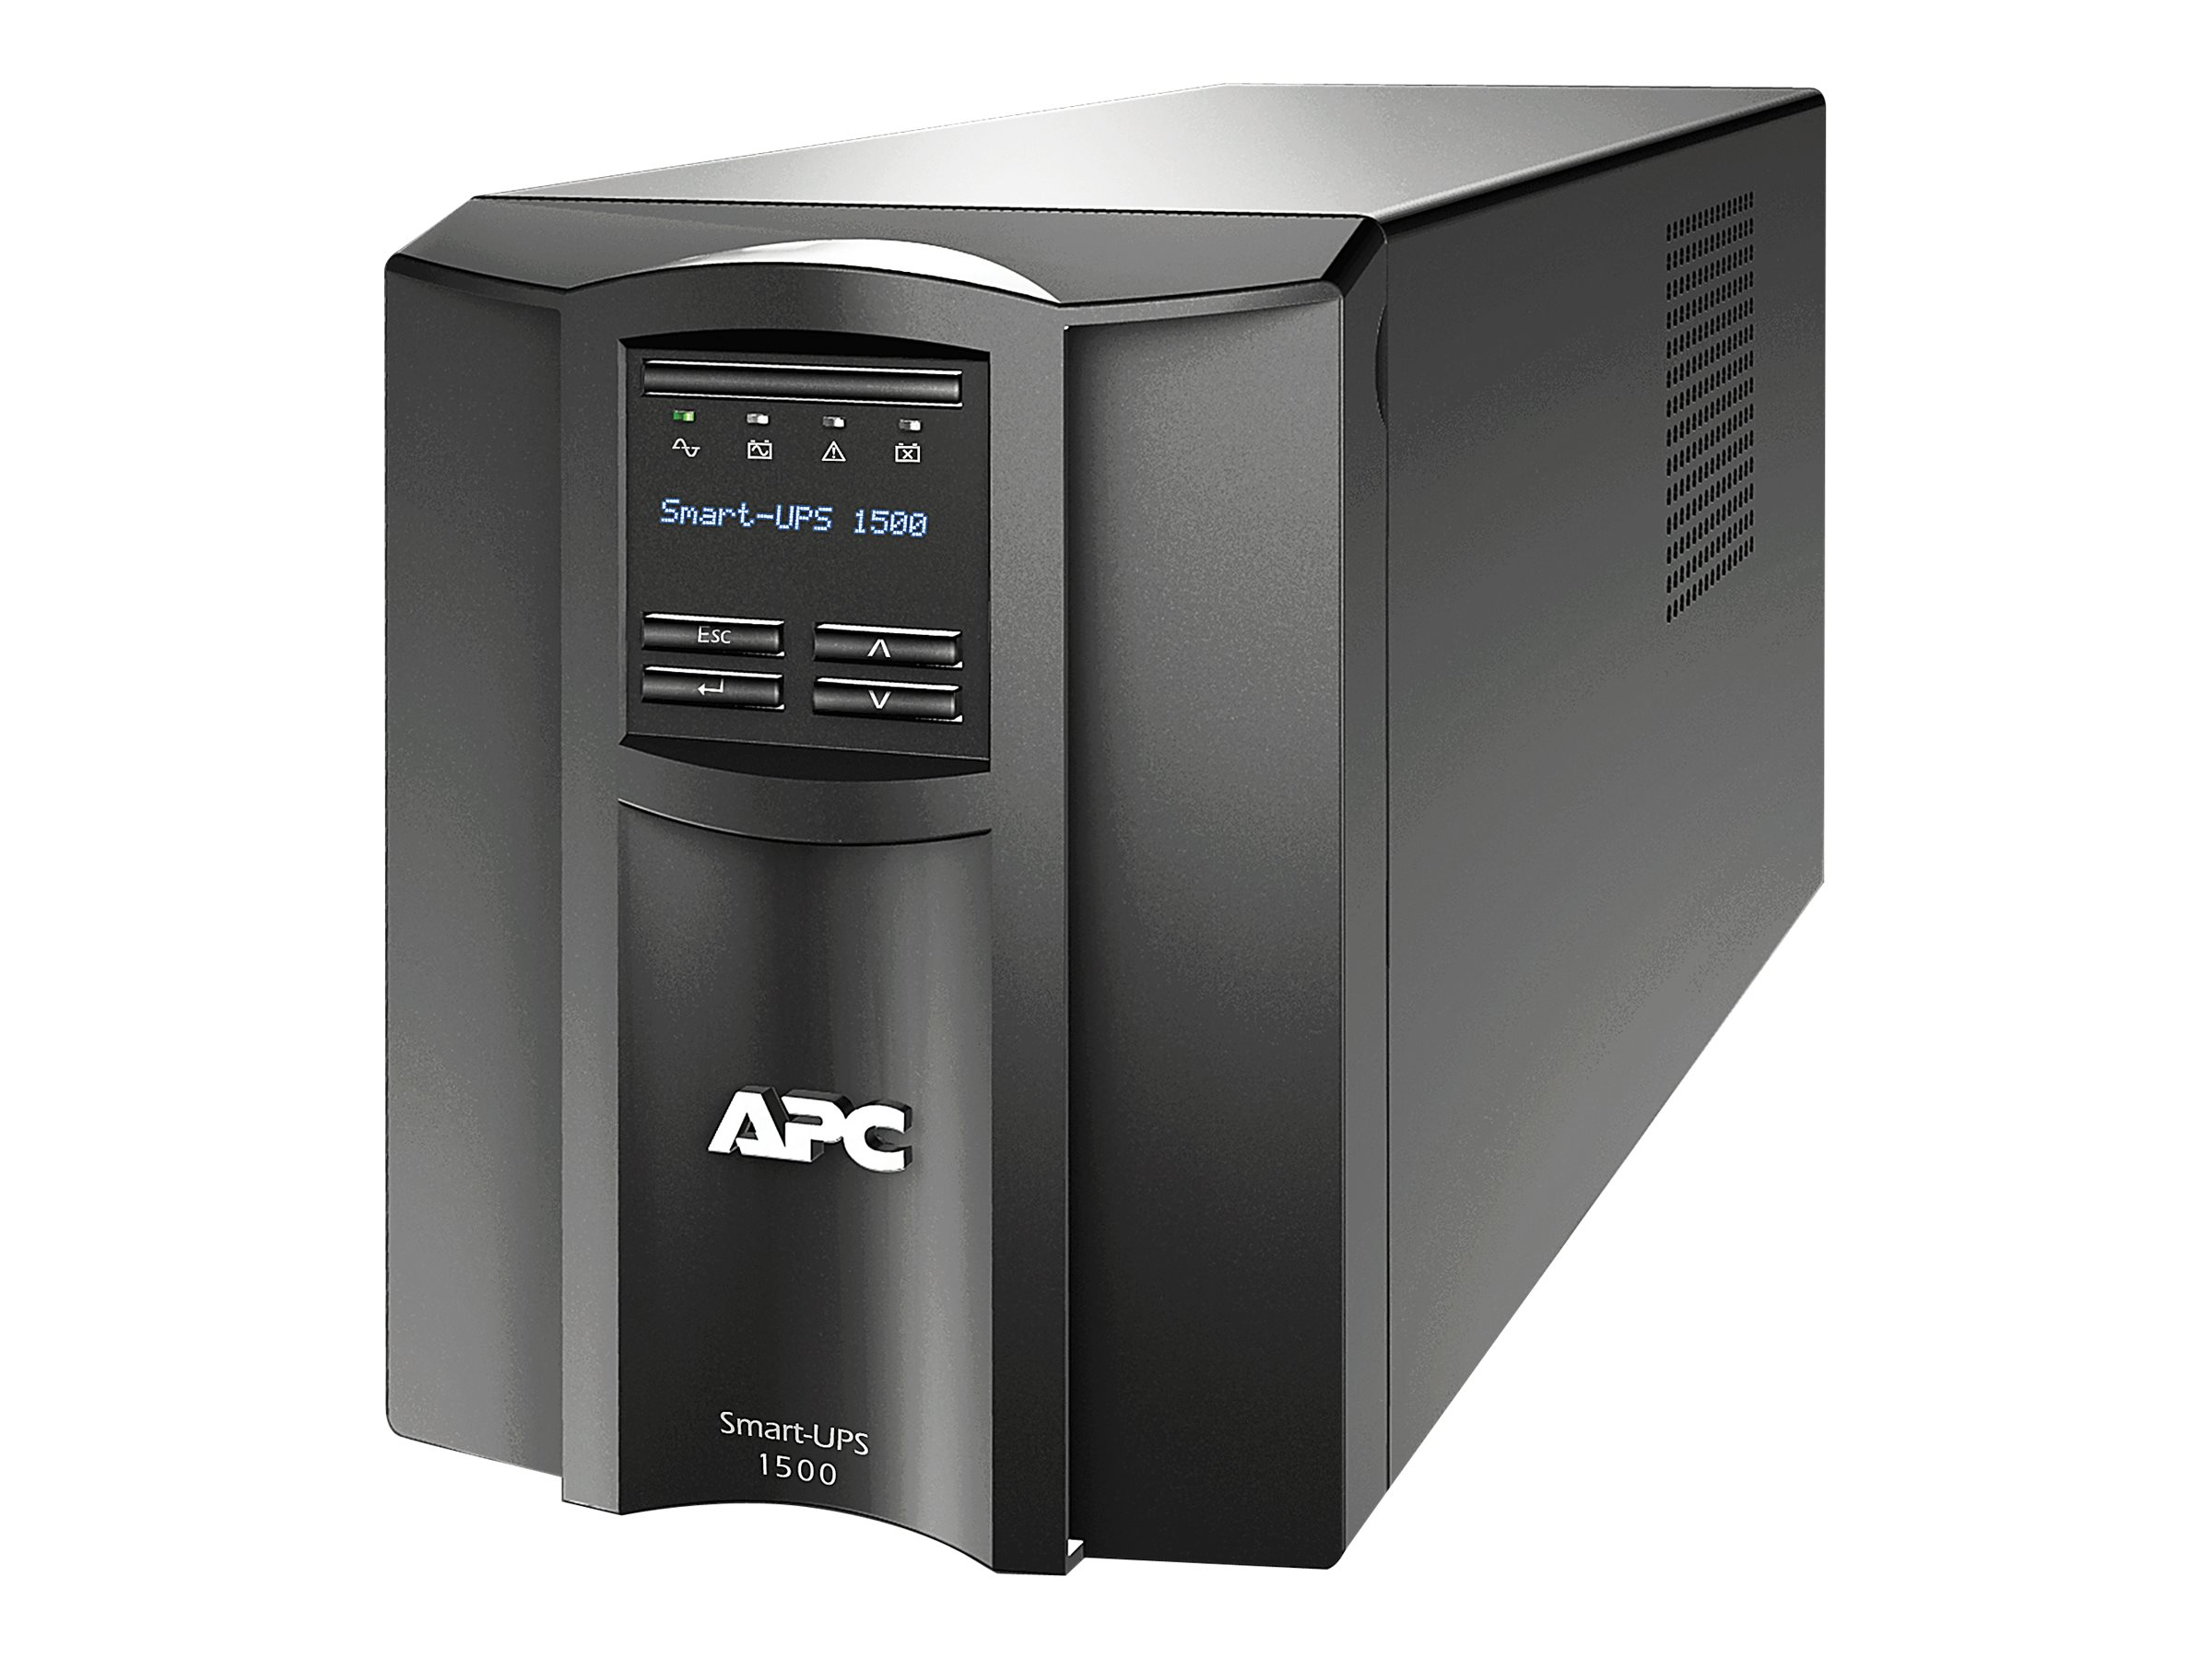 APC Smart-UPS 1500VA 980W 120V LCD Tower UPS (8) 5-15R Outlets USB Serial, Instant Rebate - Save $15, SMT1500, 10334485, Battery Backup/UPS